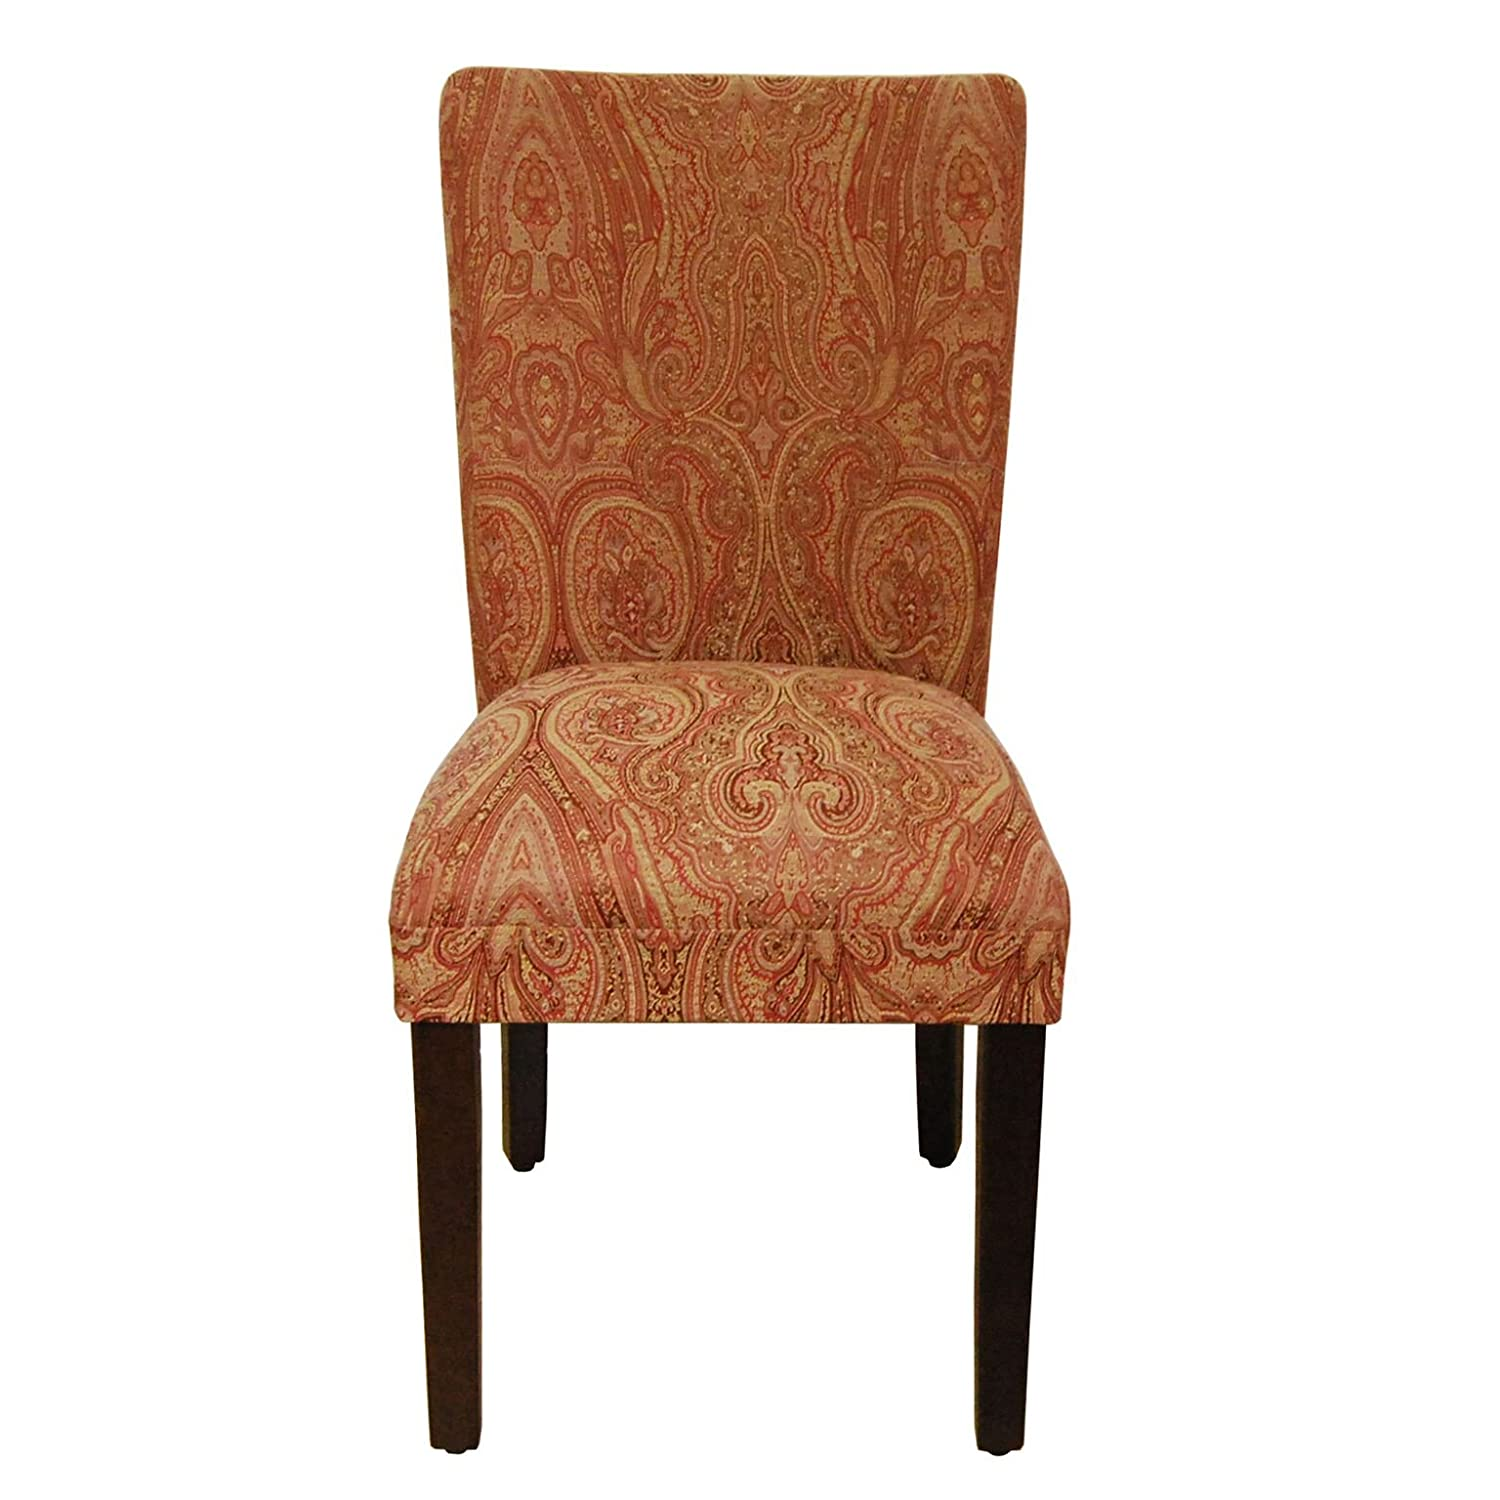 HomePop Parsons Classic Upholstered Accent Dining Chair,Single Pack, Red Damask